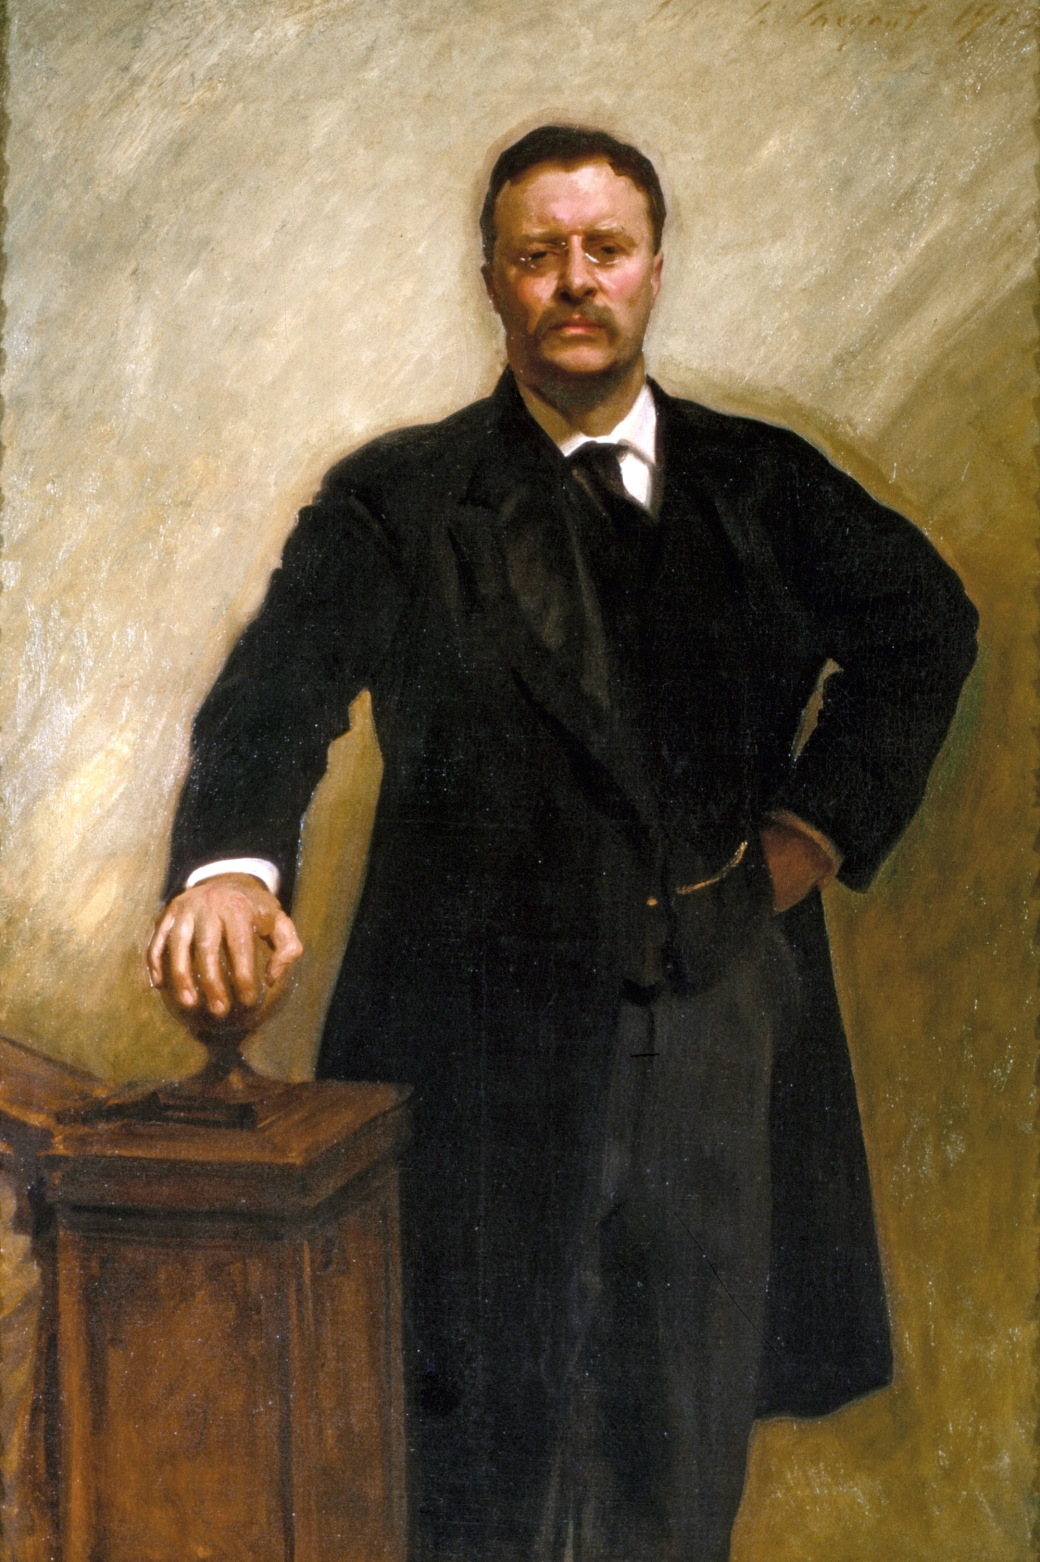 theodore_roosevelt_by_john_singer_sargent_1903